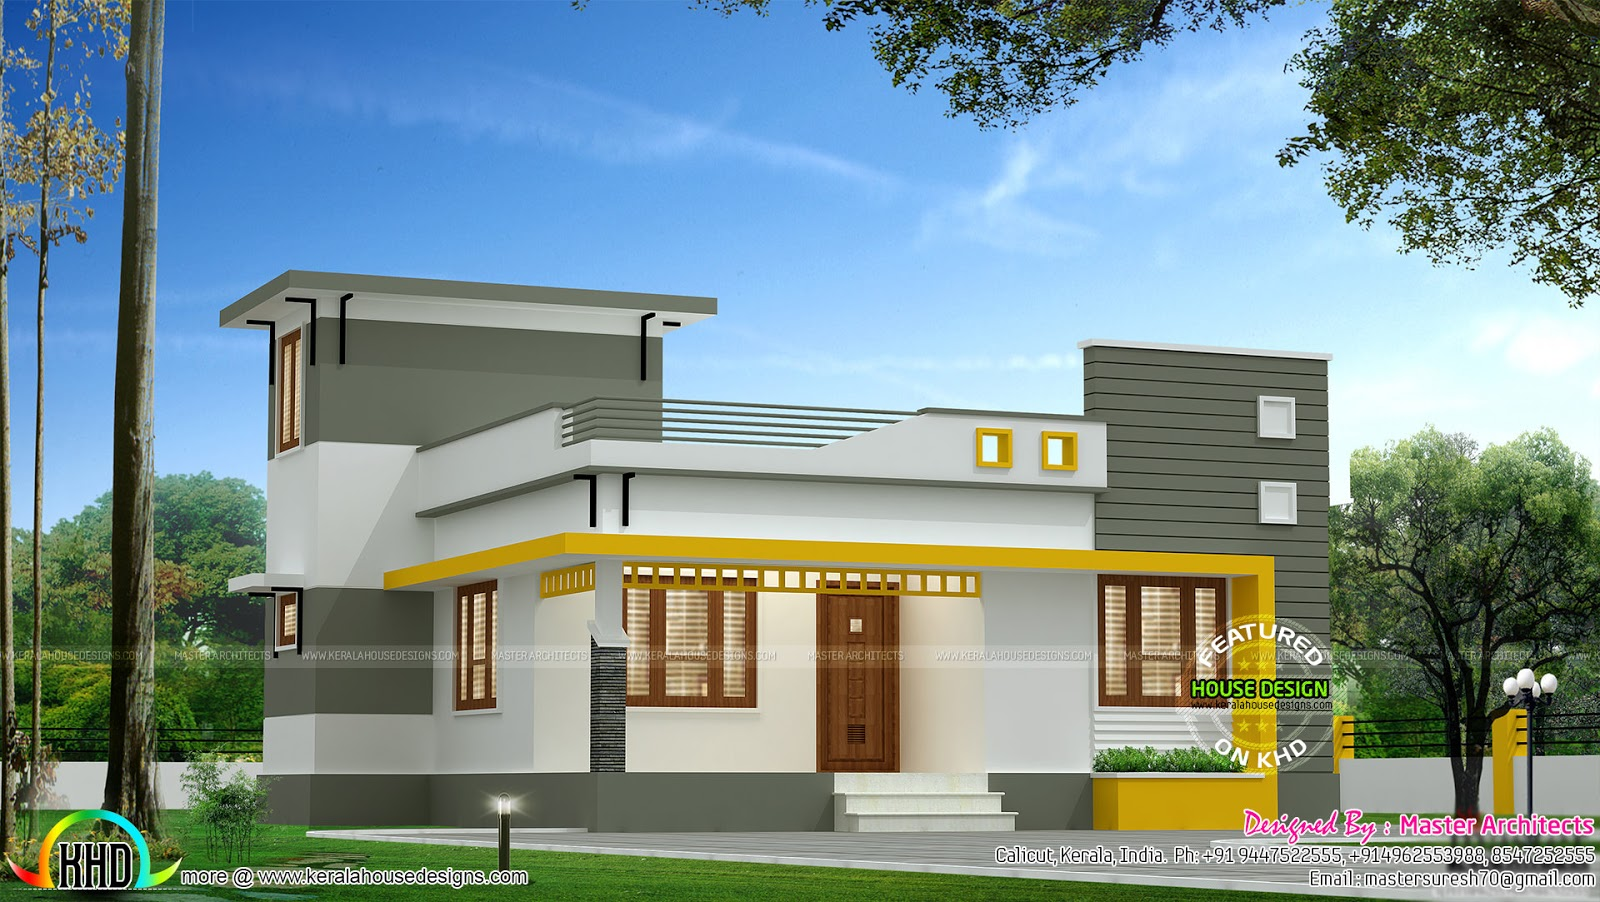 3 bedroom single floor modern architecture home kerala for Modern home design 1 floor